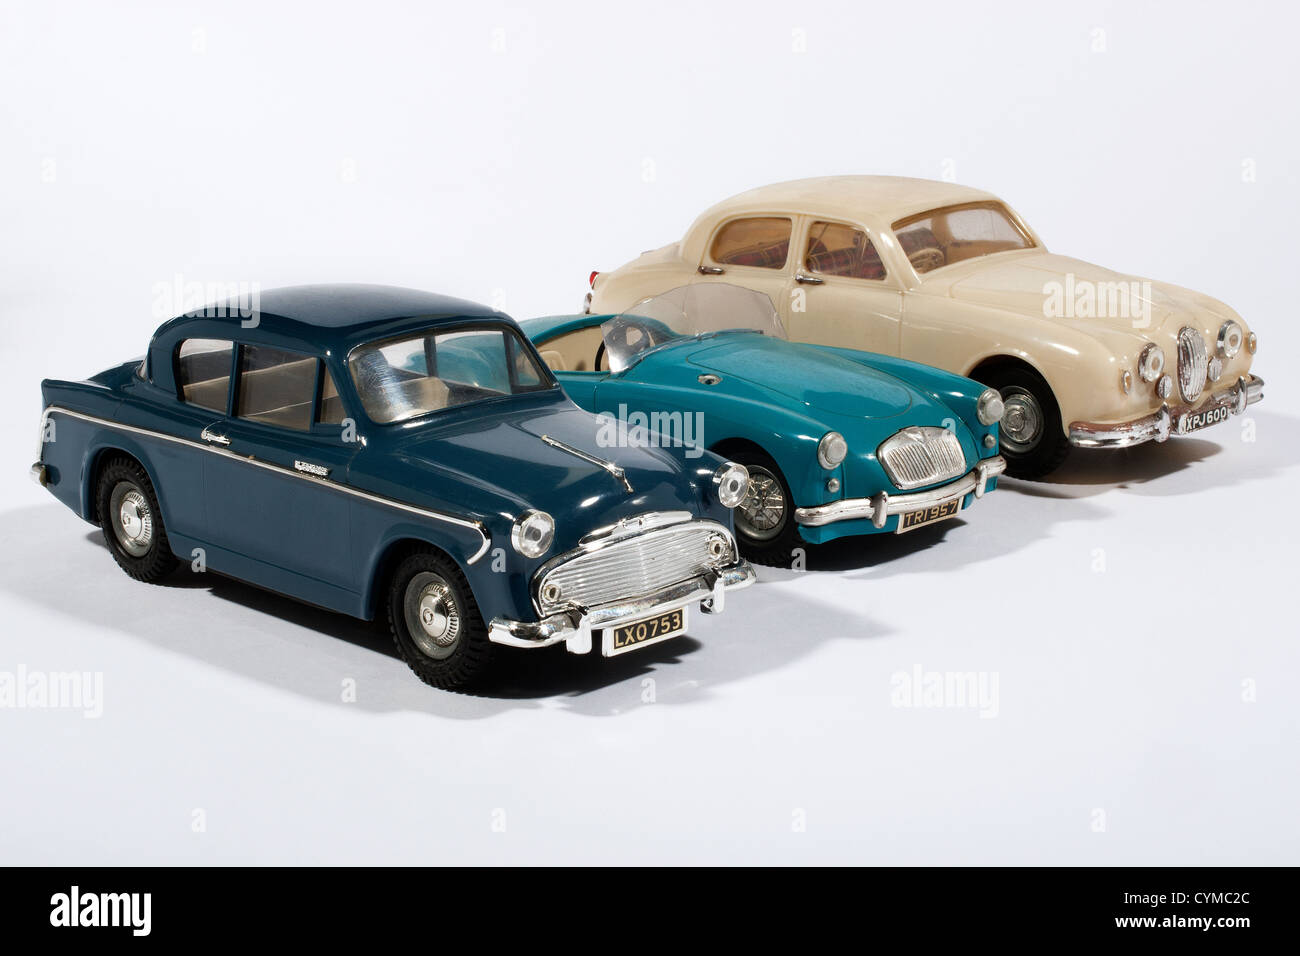 Plastic Triang Minic 1/20th scale electric model cars - Stock Image